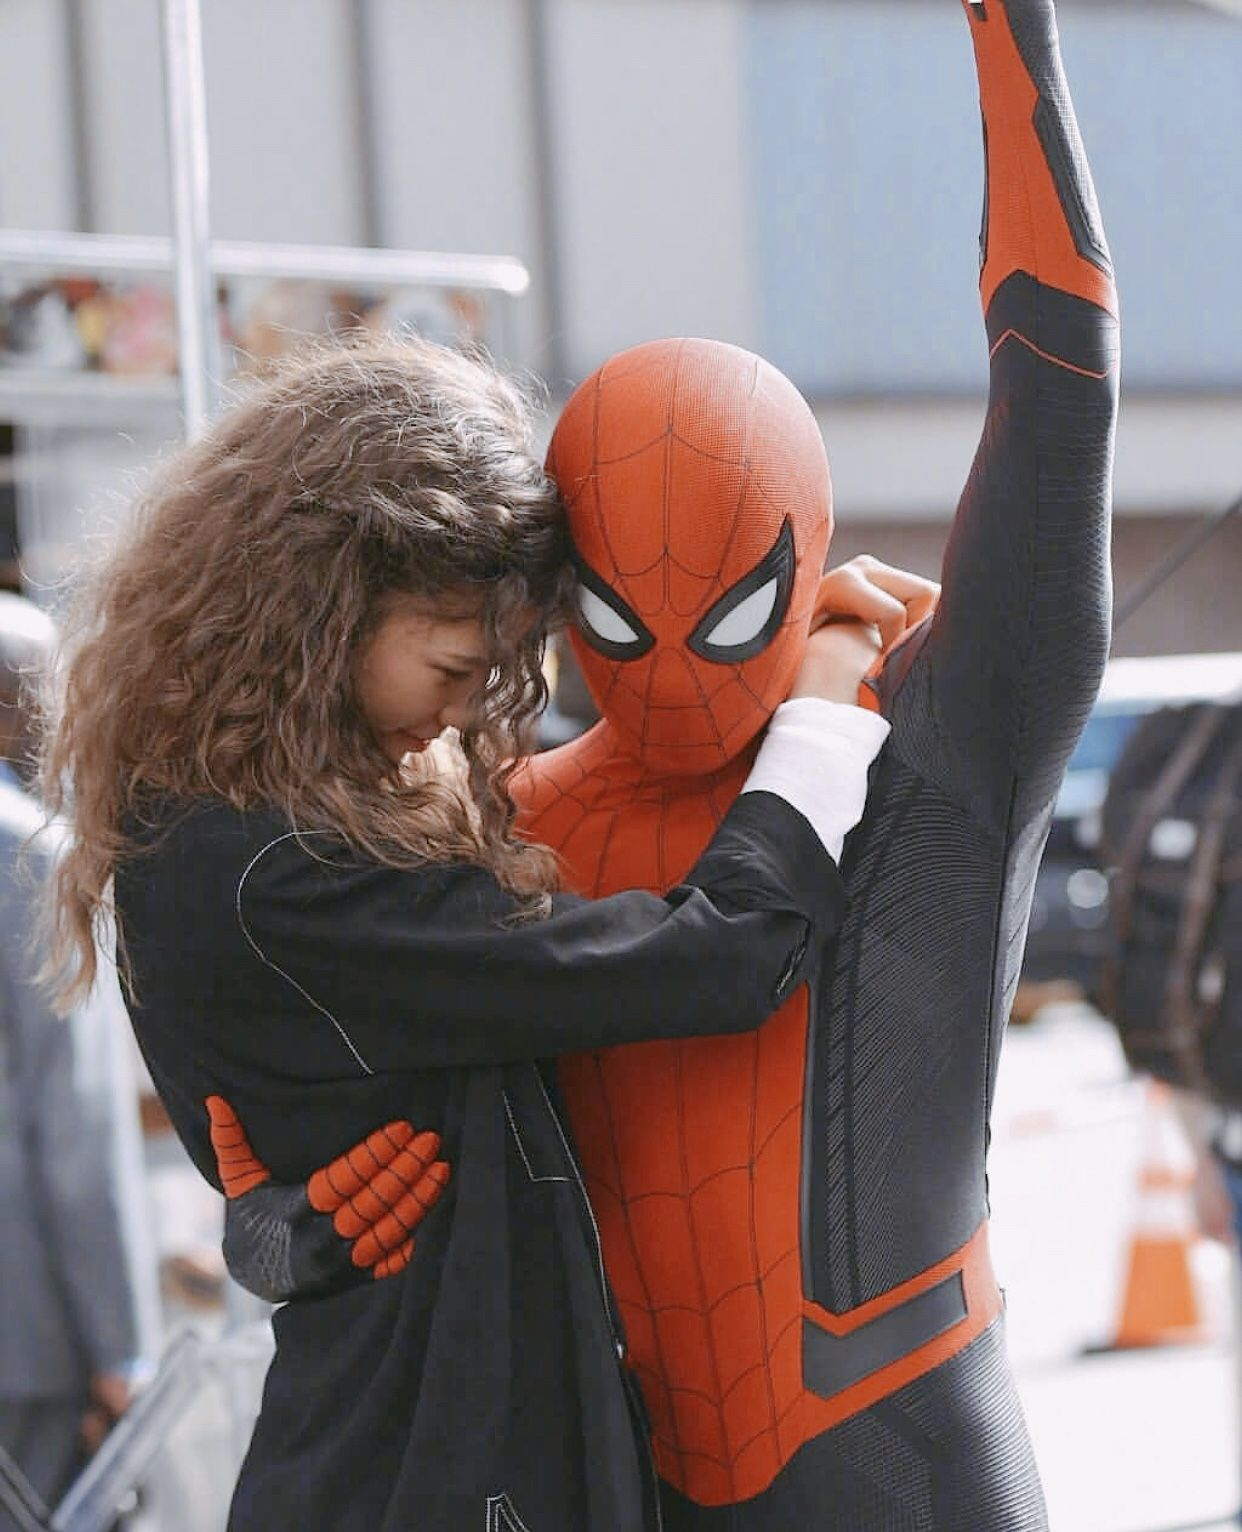 Pin By Cemre On M A R V E L Tom Holland Spiderman Peter Parker Spiderman Spiderman